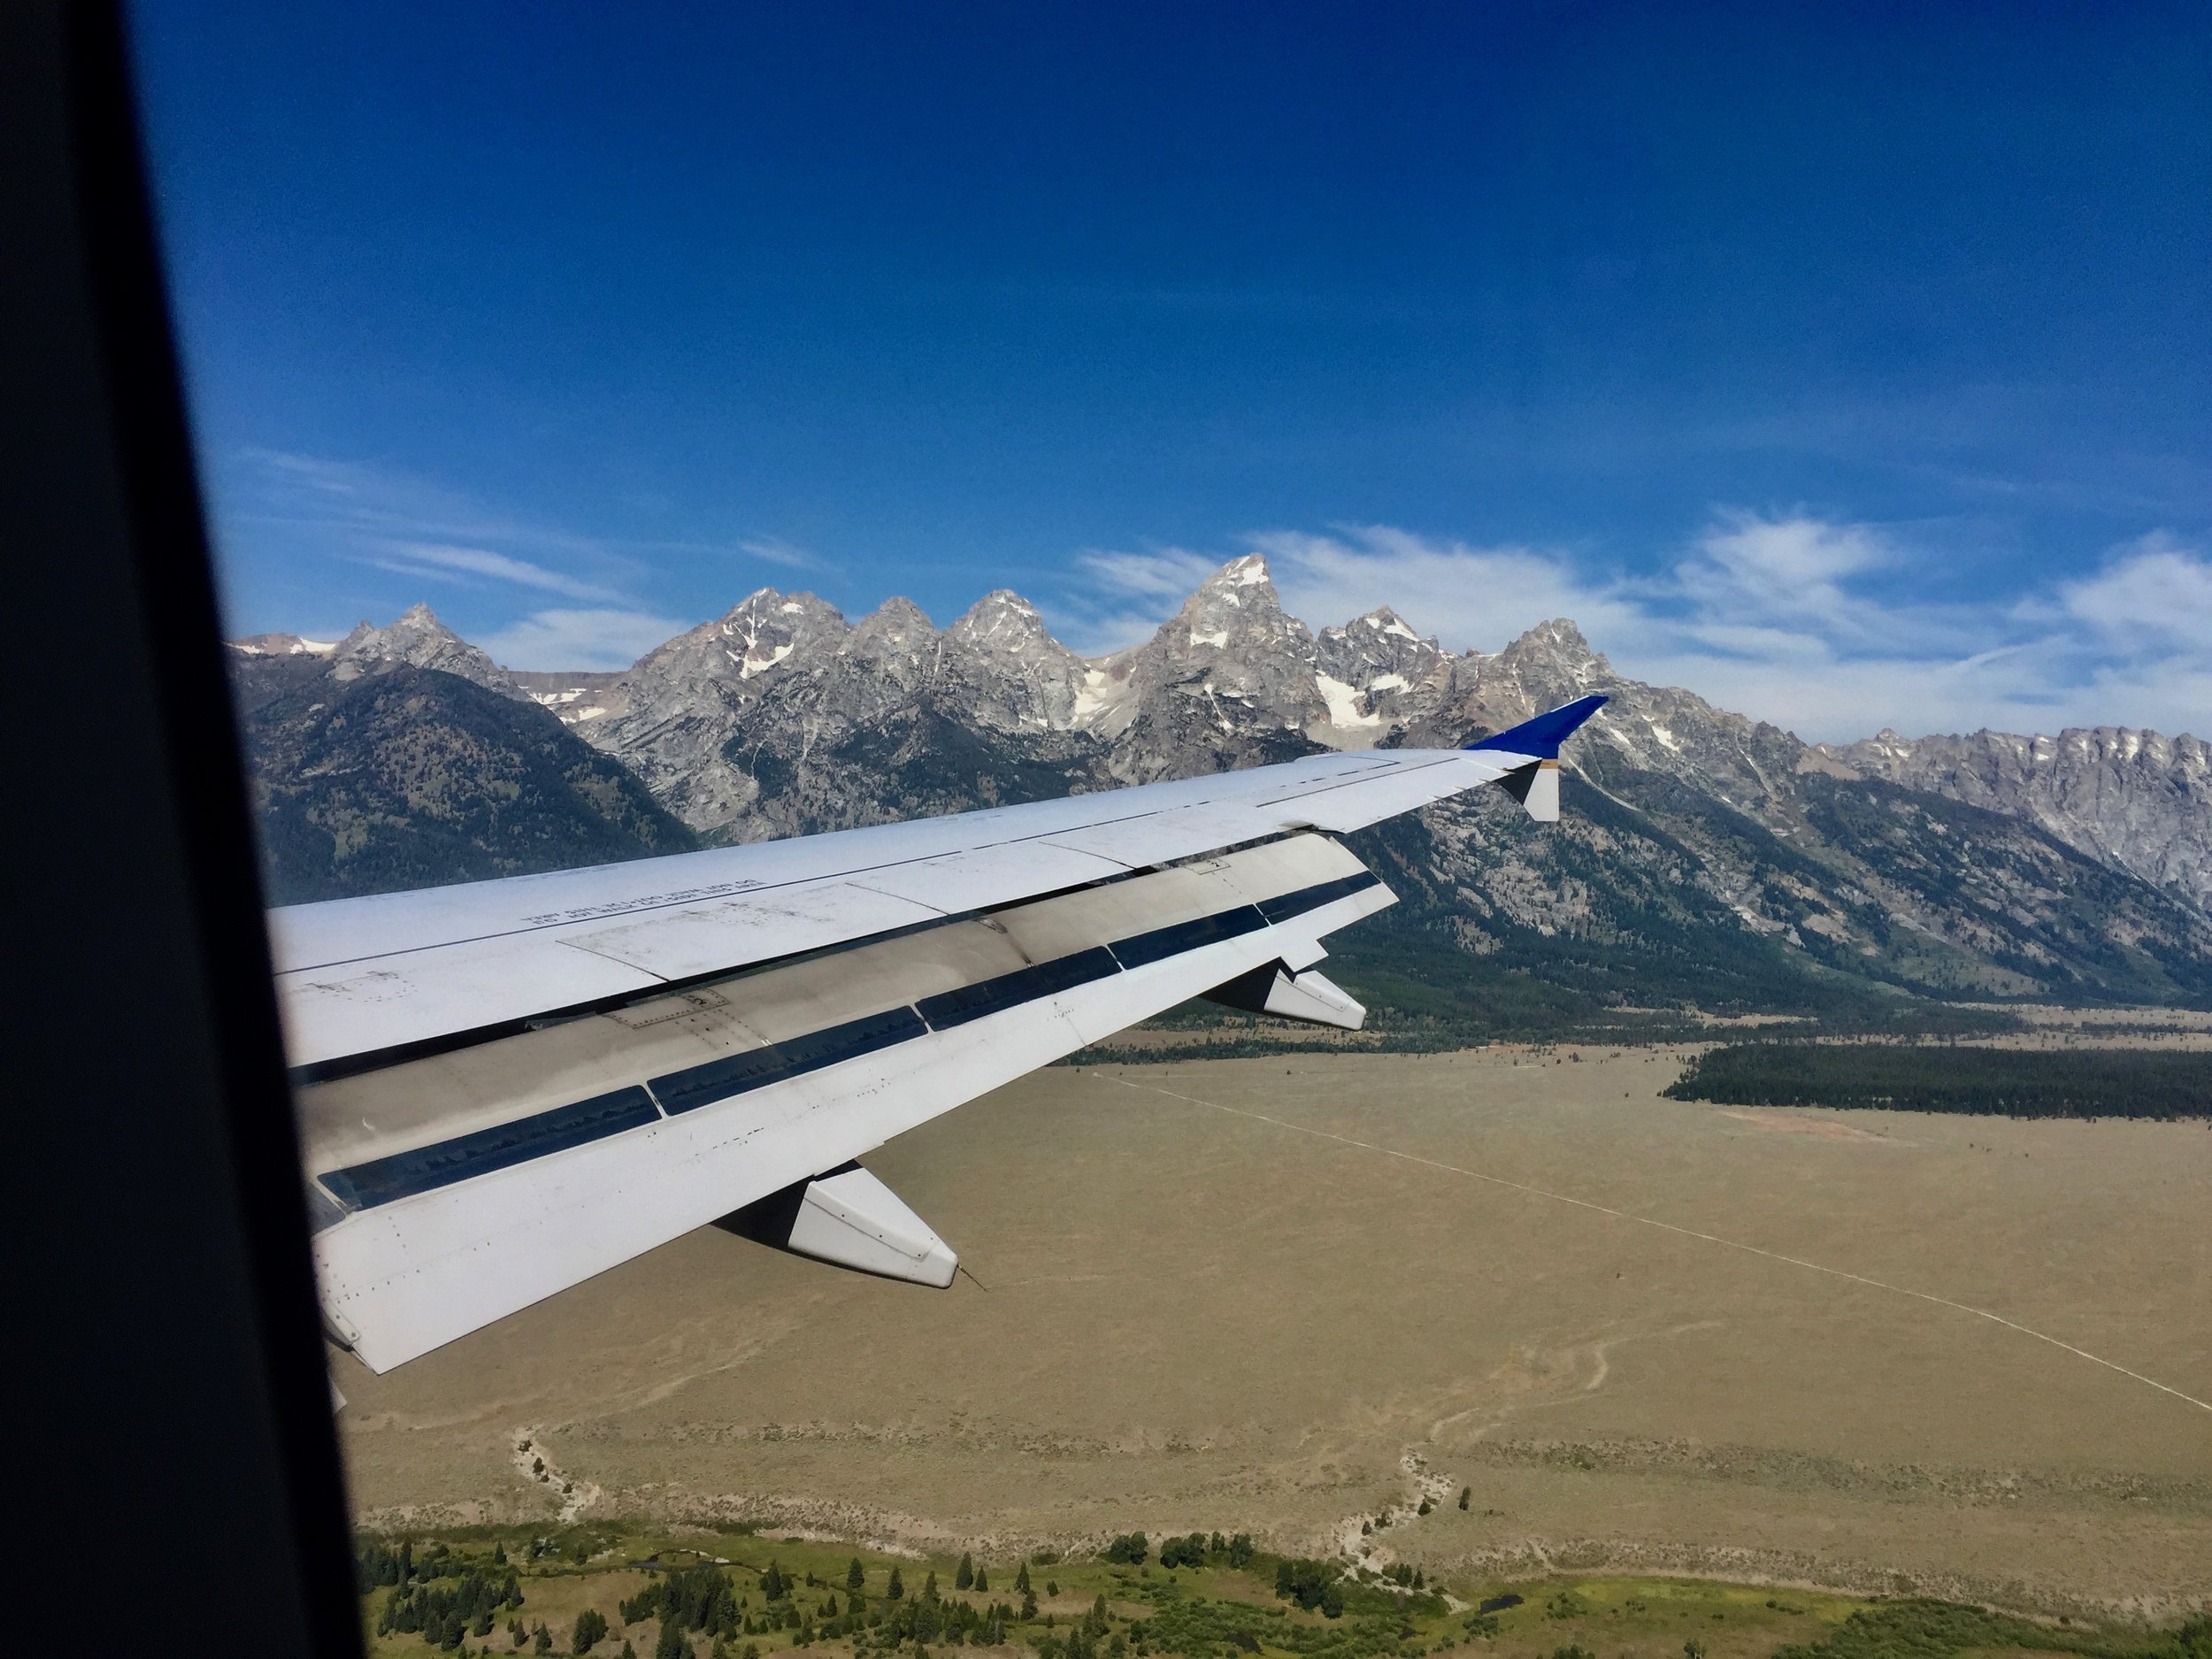 When you look out of the window when your plane is landing and you see this, you know it's going to be a great trip!